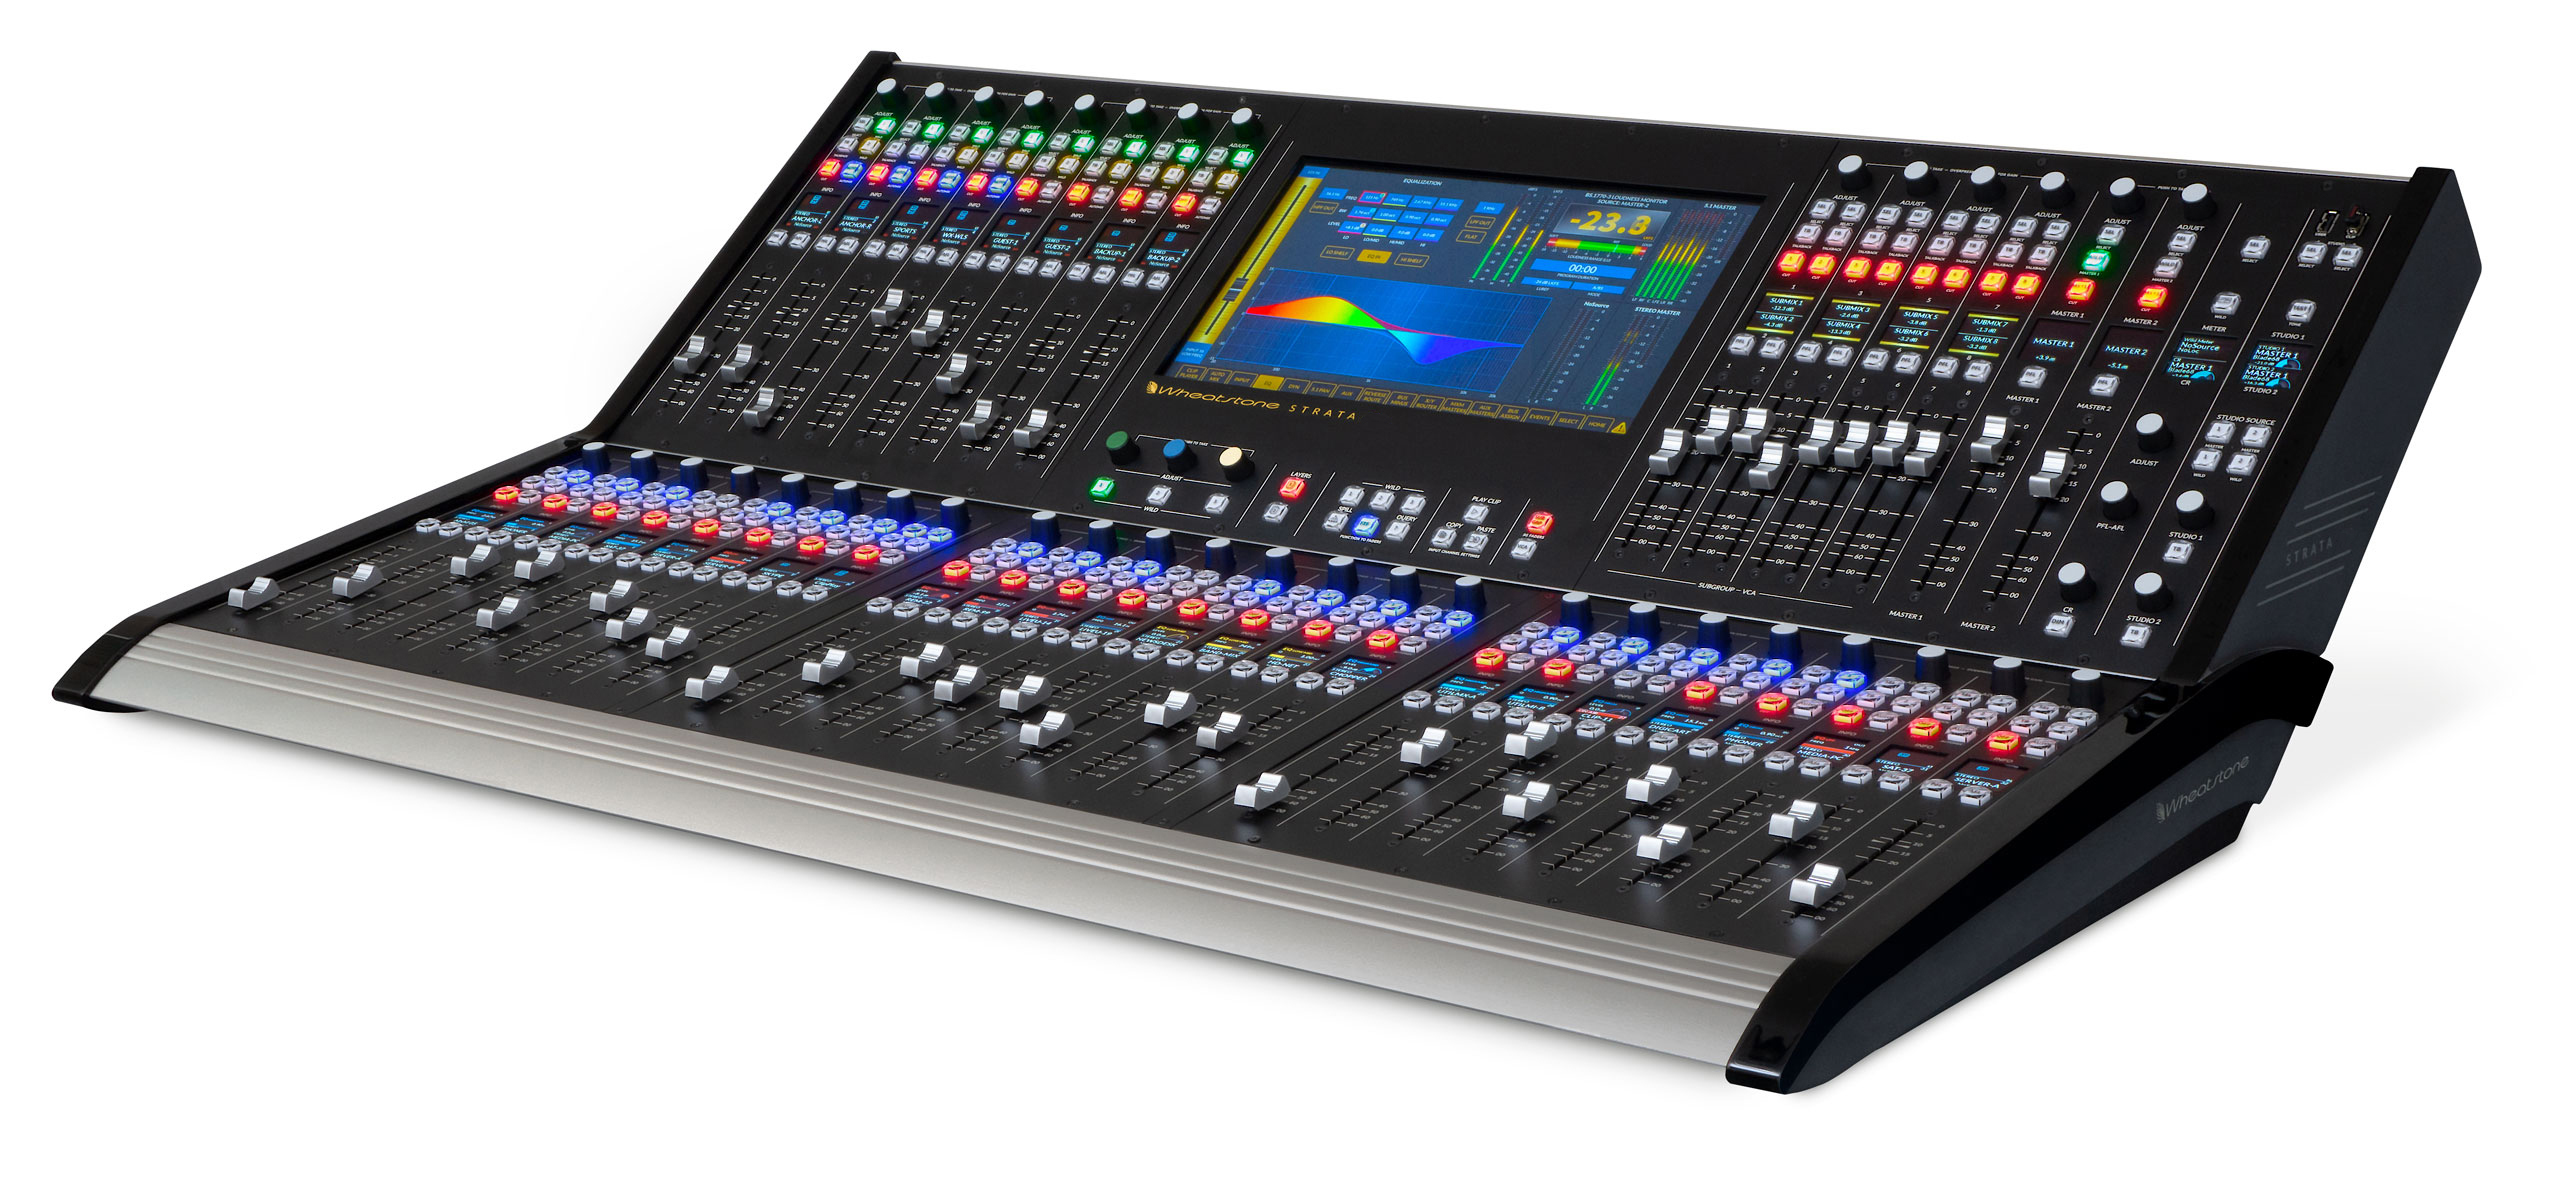 WHEATSTONE TO SHOW COMPACT IP AUDIO CONSOLE AT IBC